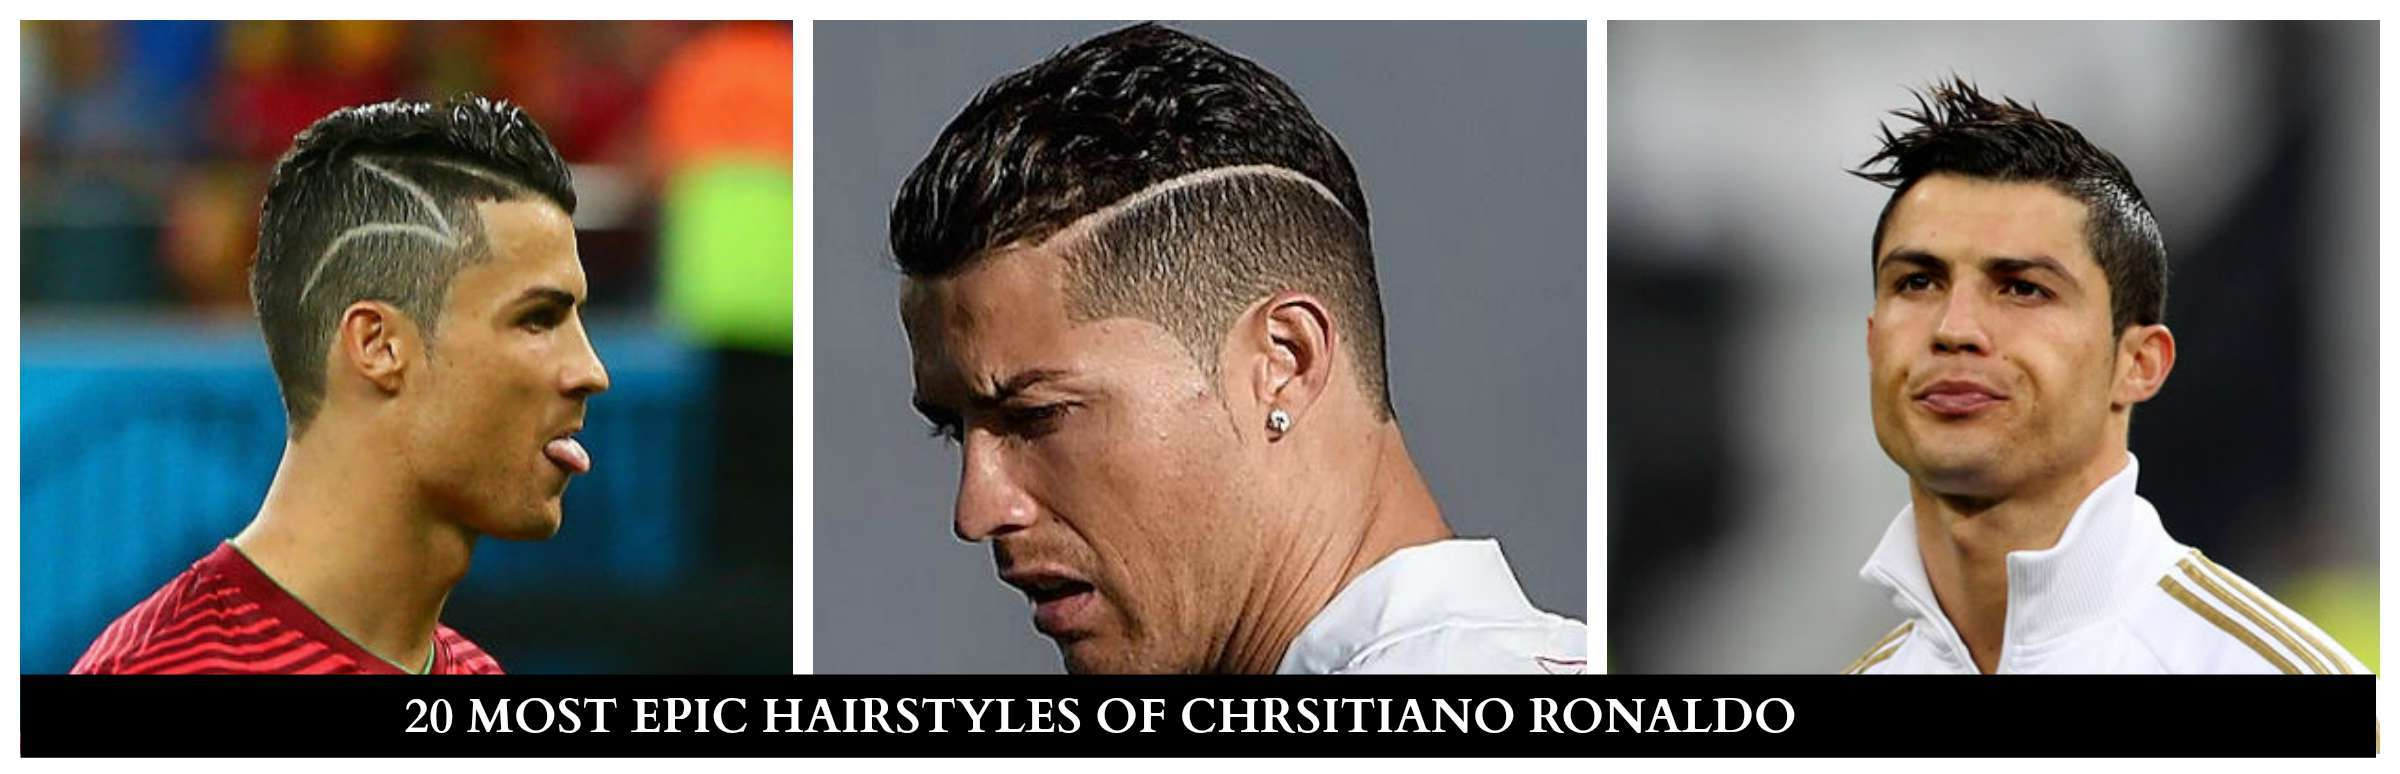 LATEST HAIRSTYLES OF CHRISTIANO RONALDO